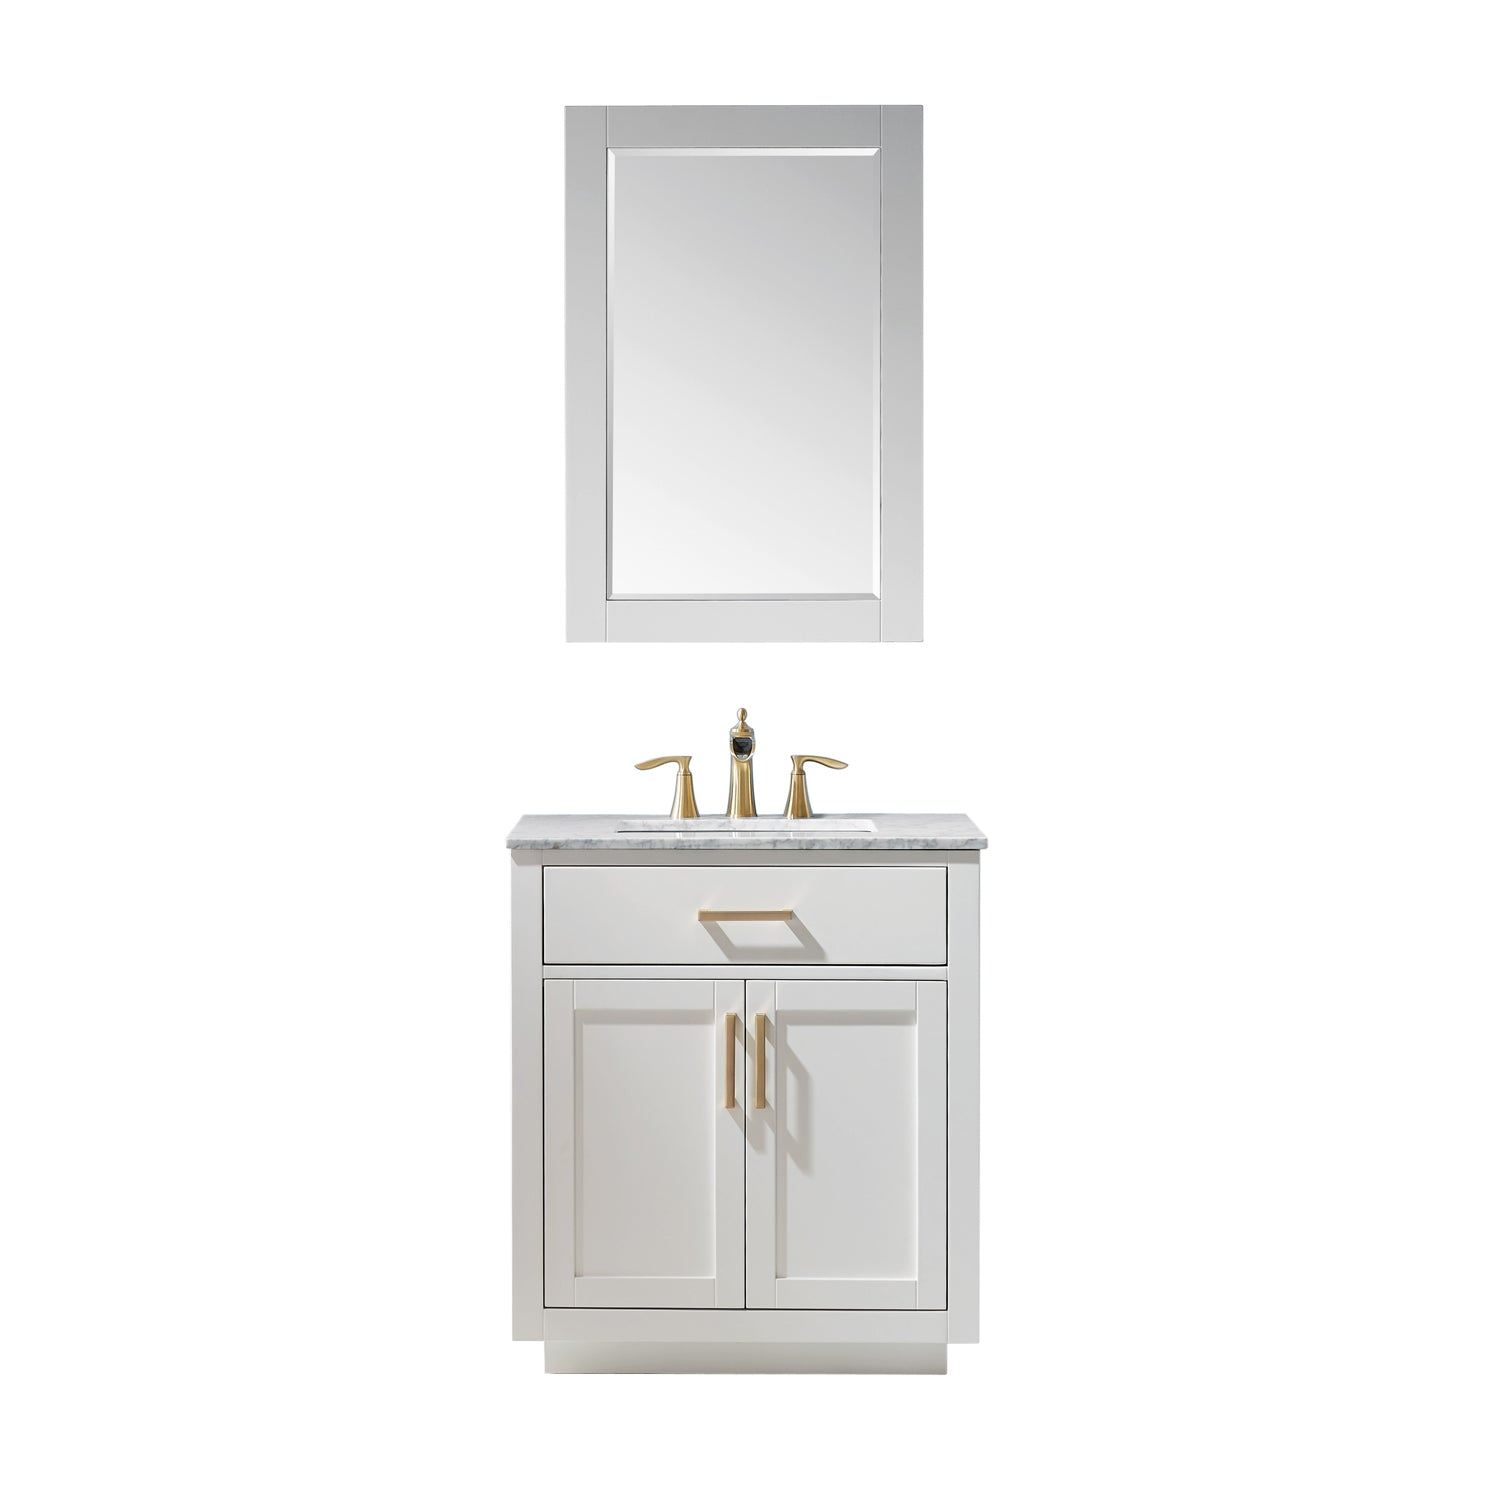 "Ivy 30"" Single Bathroom Vanity Set in White and Carrara White Marble Countertop with Mirror"